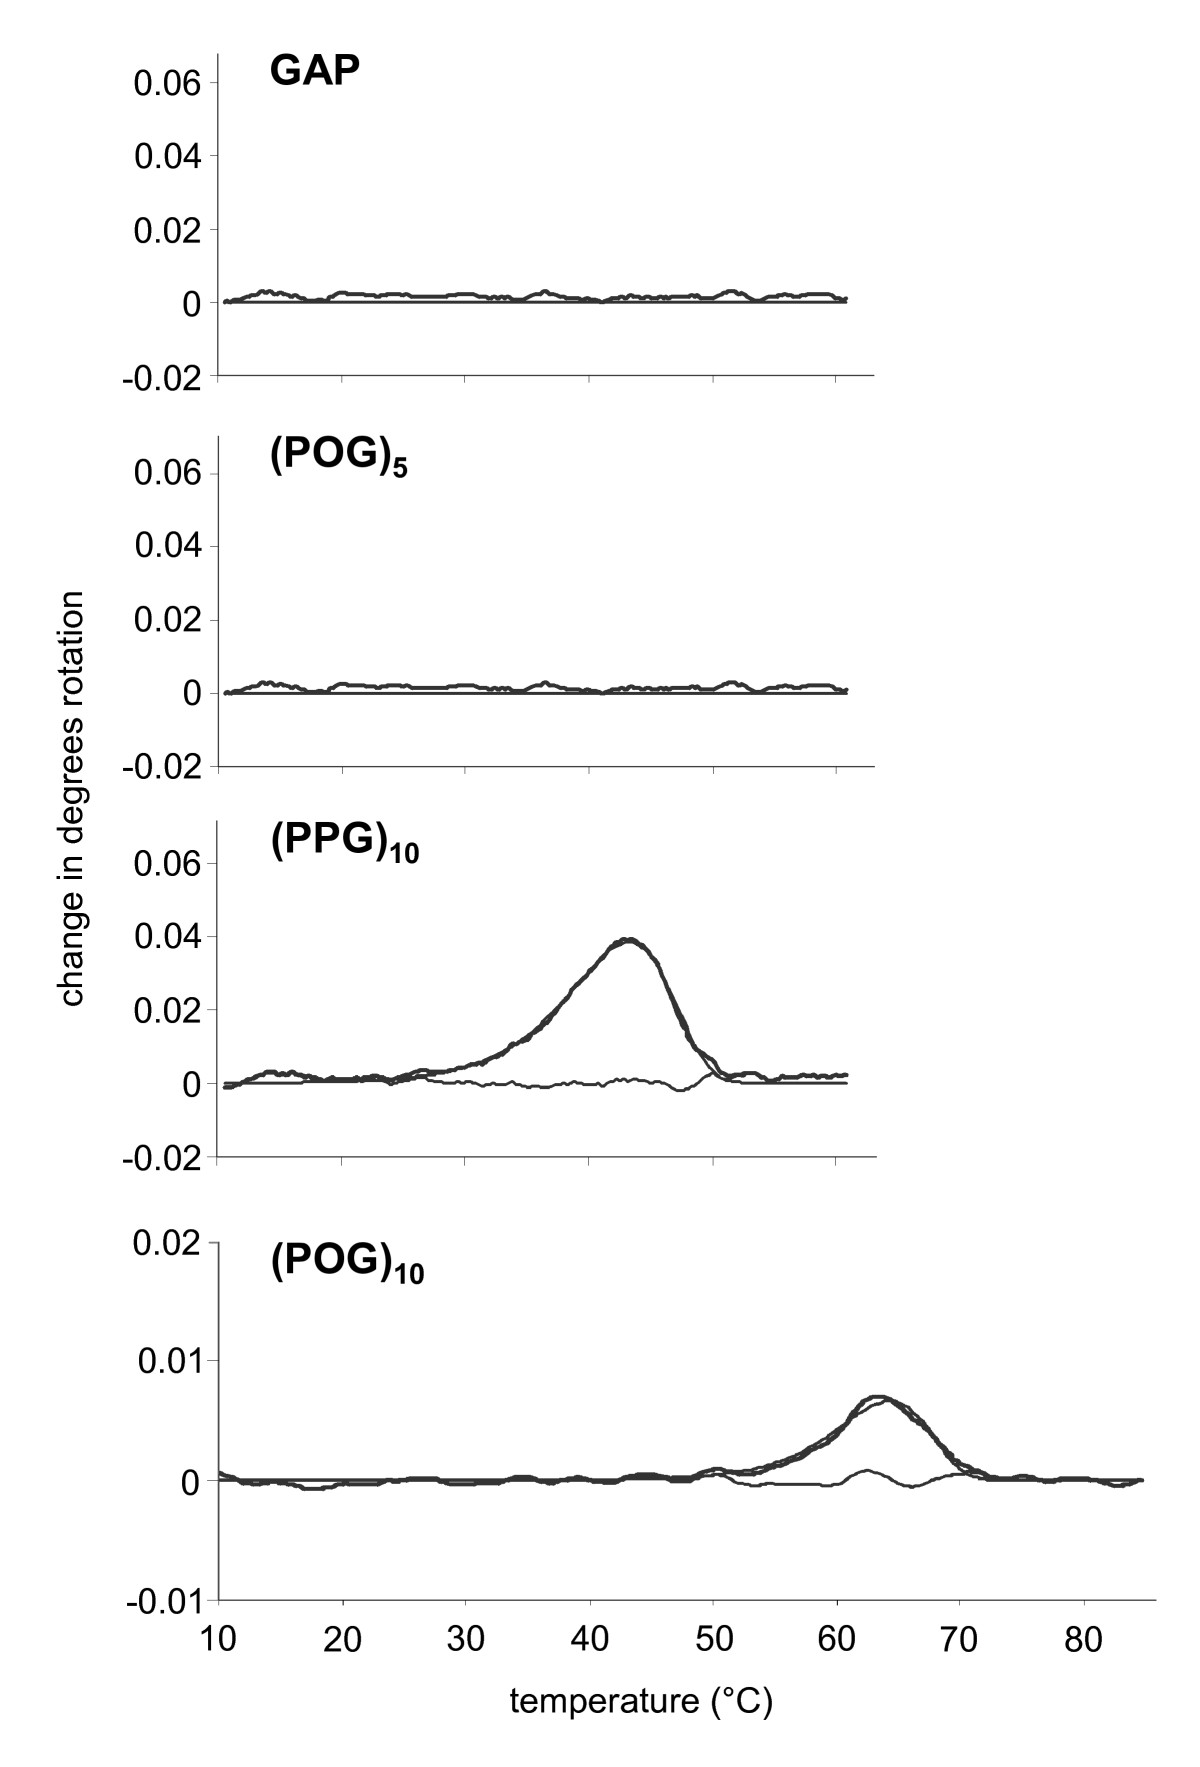 http://static-content.springer.com/image/art%3A10.1186%2F1755-1536-4-1/MediaObjects/13069_2010_Article_41_Fig5_HTML.jpg